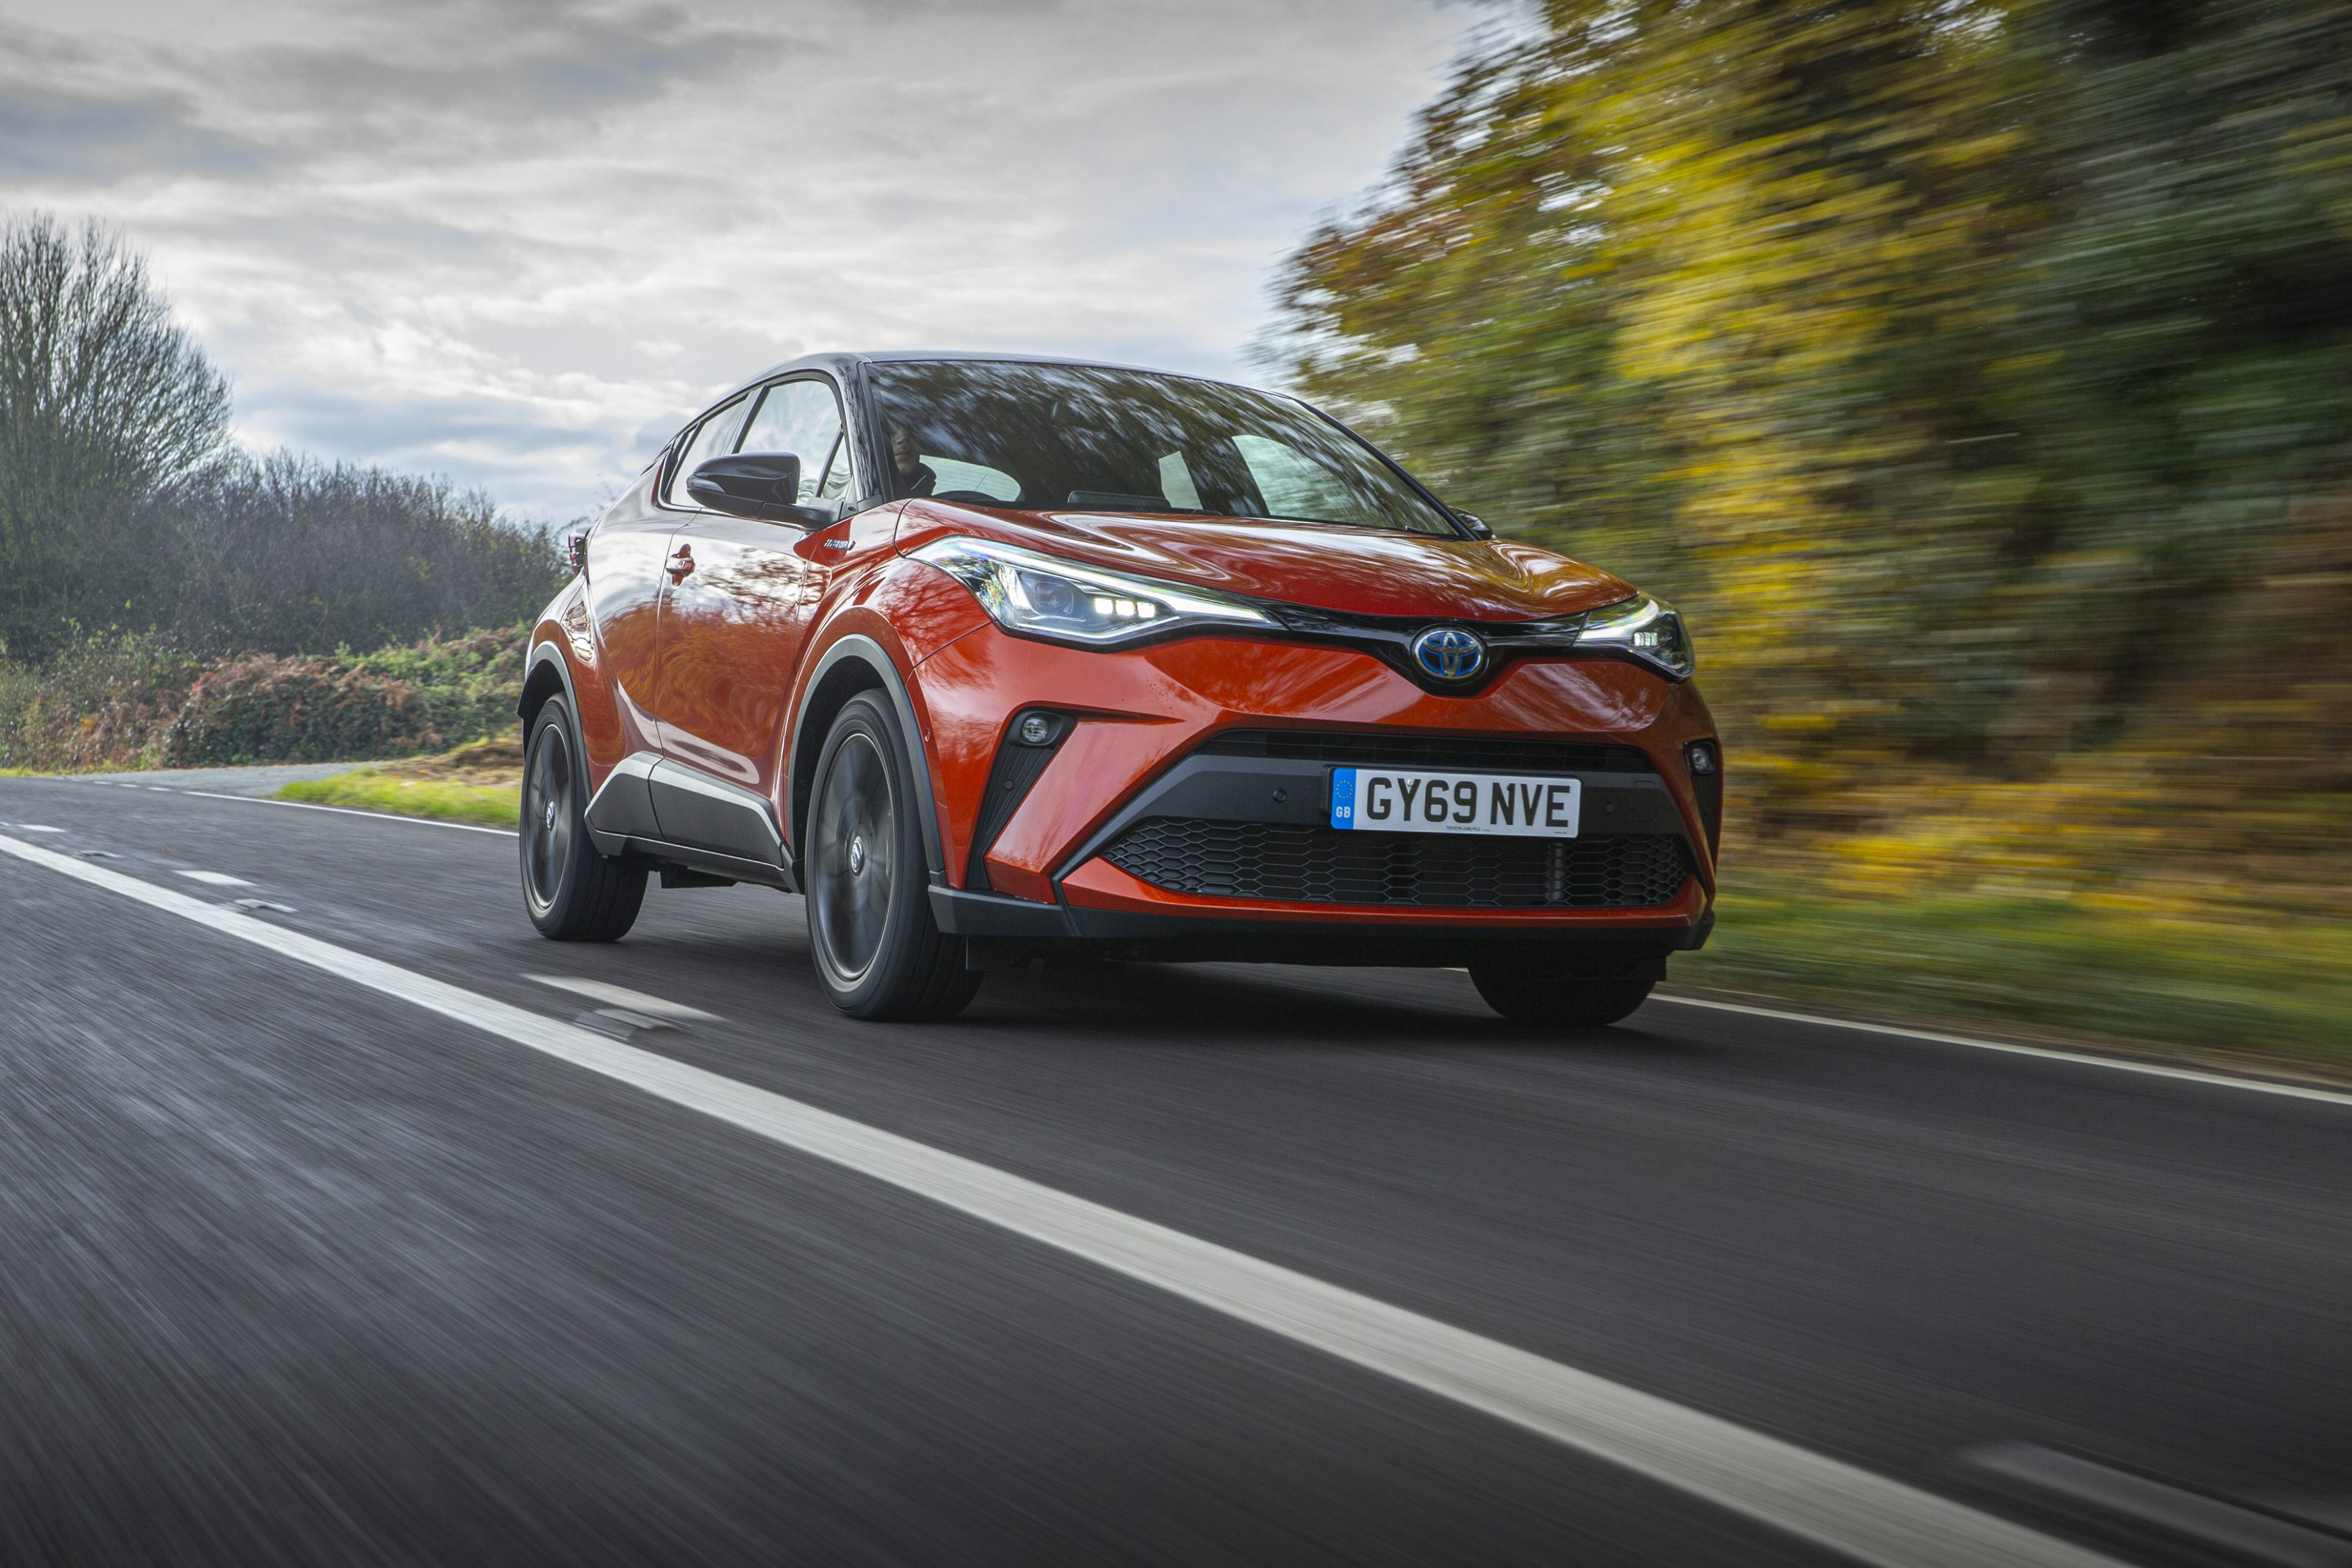 Toyota-C-HR driving on a country road 2